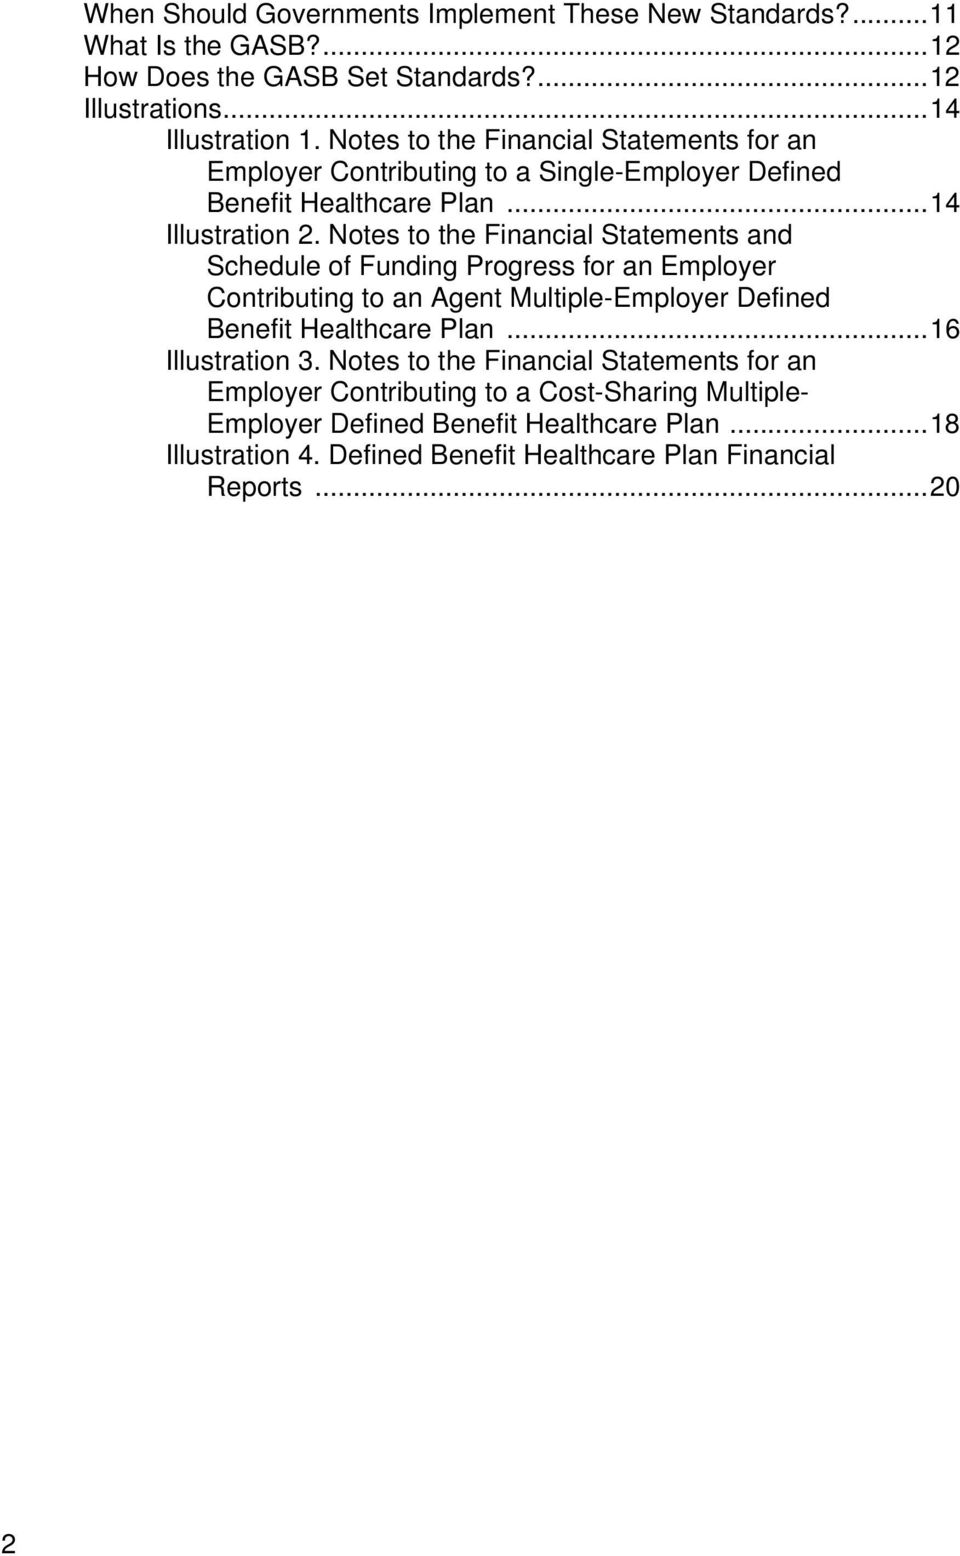 Notes to the Financial Statements and Schedule of Funding Progress for an Employer Contributing to an Agent Multiple-Employer Defined Benefit Healthcare Plan.